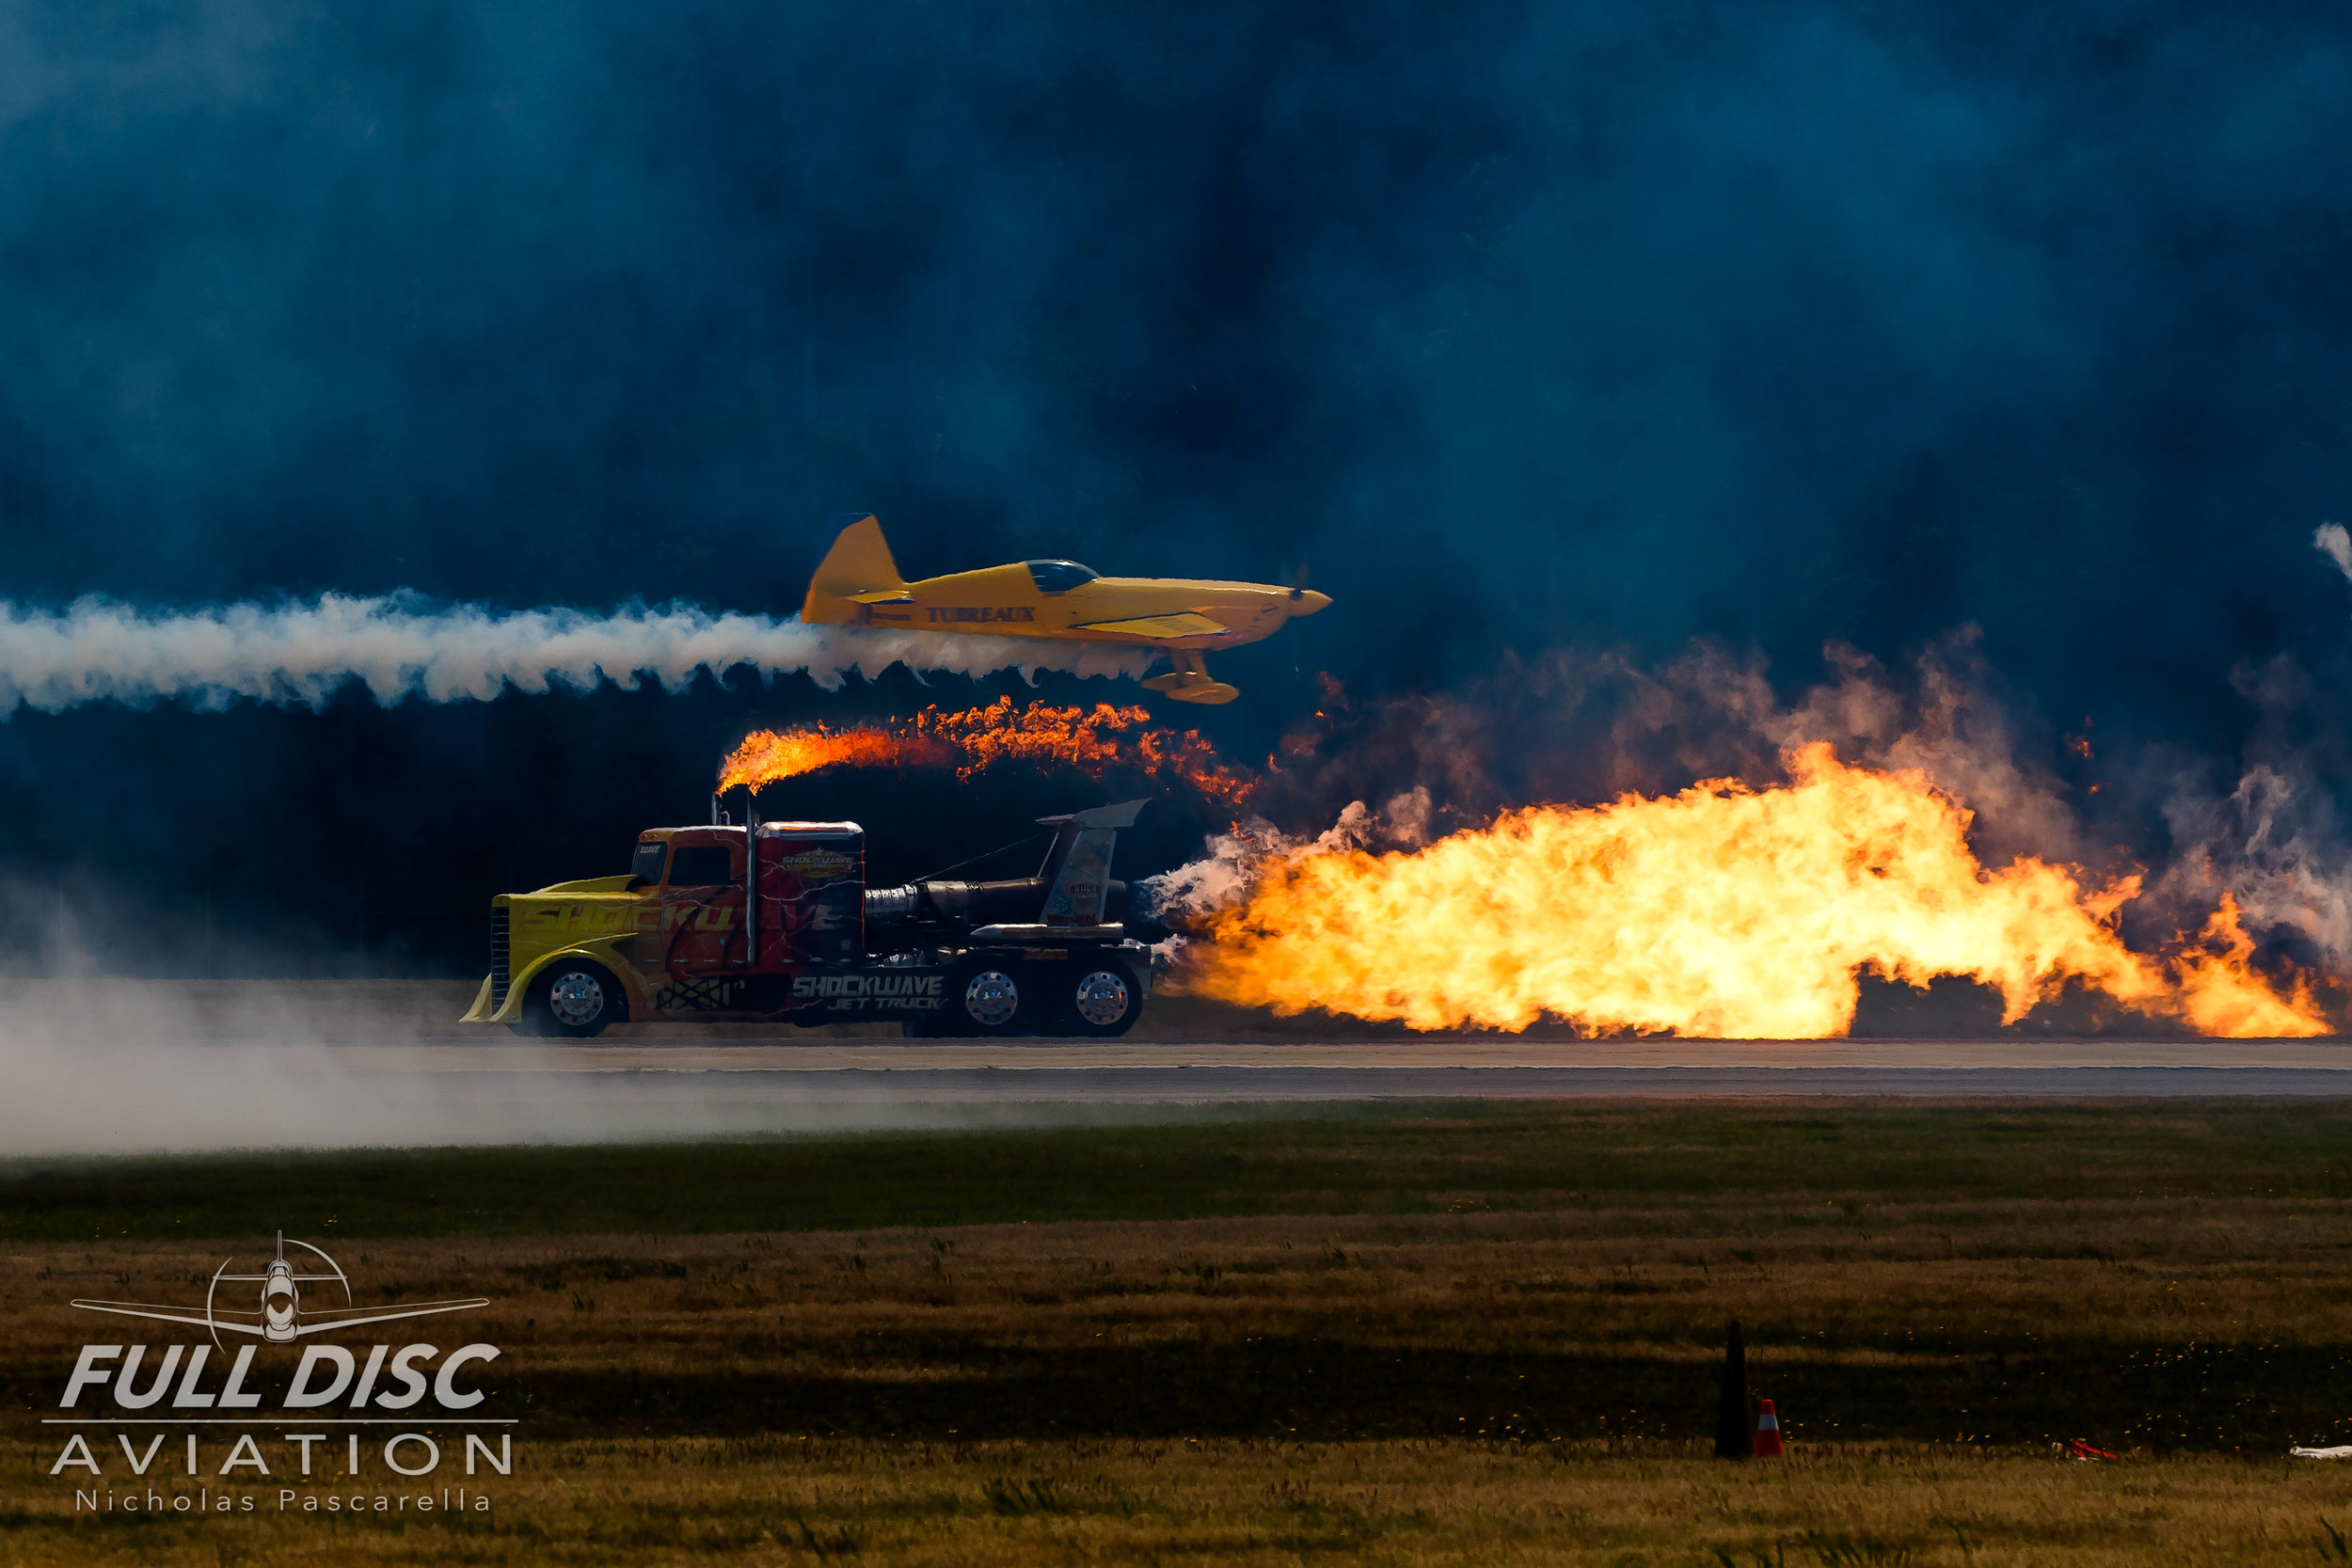 shockwavetruck_jettruck_wingsoverwayne_nicholaspascarella_fulldiscavation_aviation_airshow_crossup.jpg